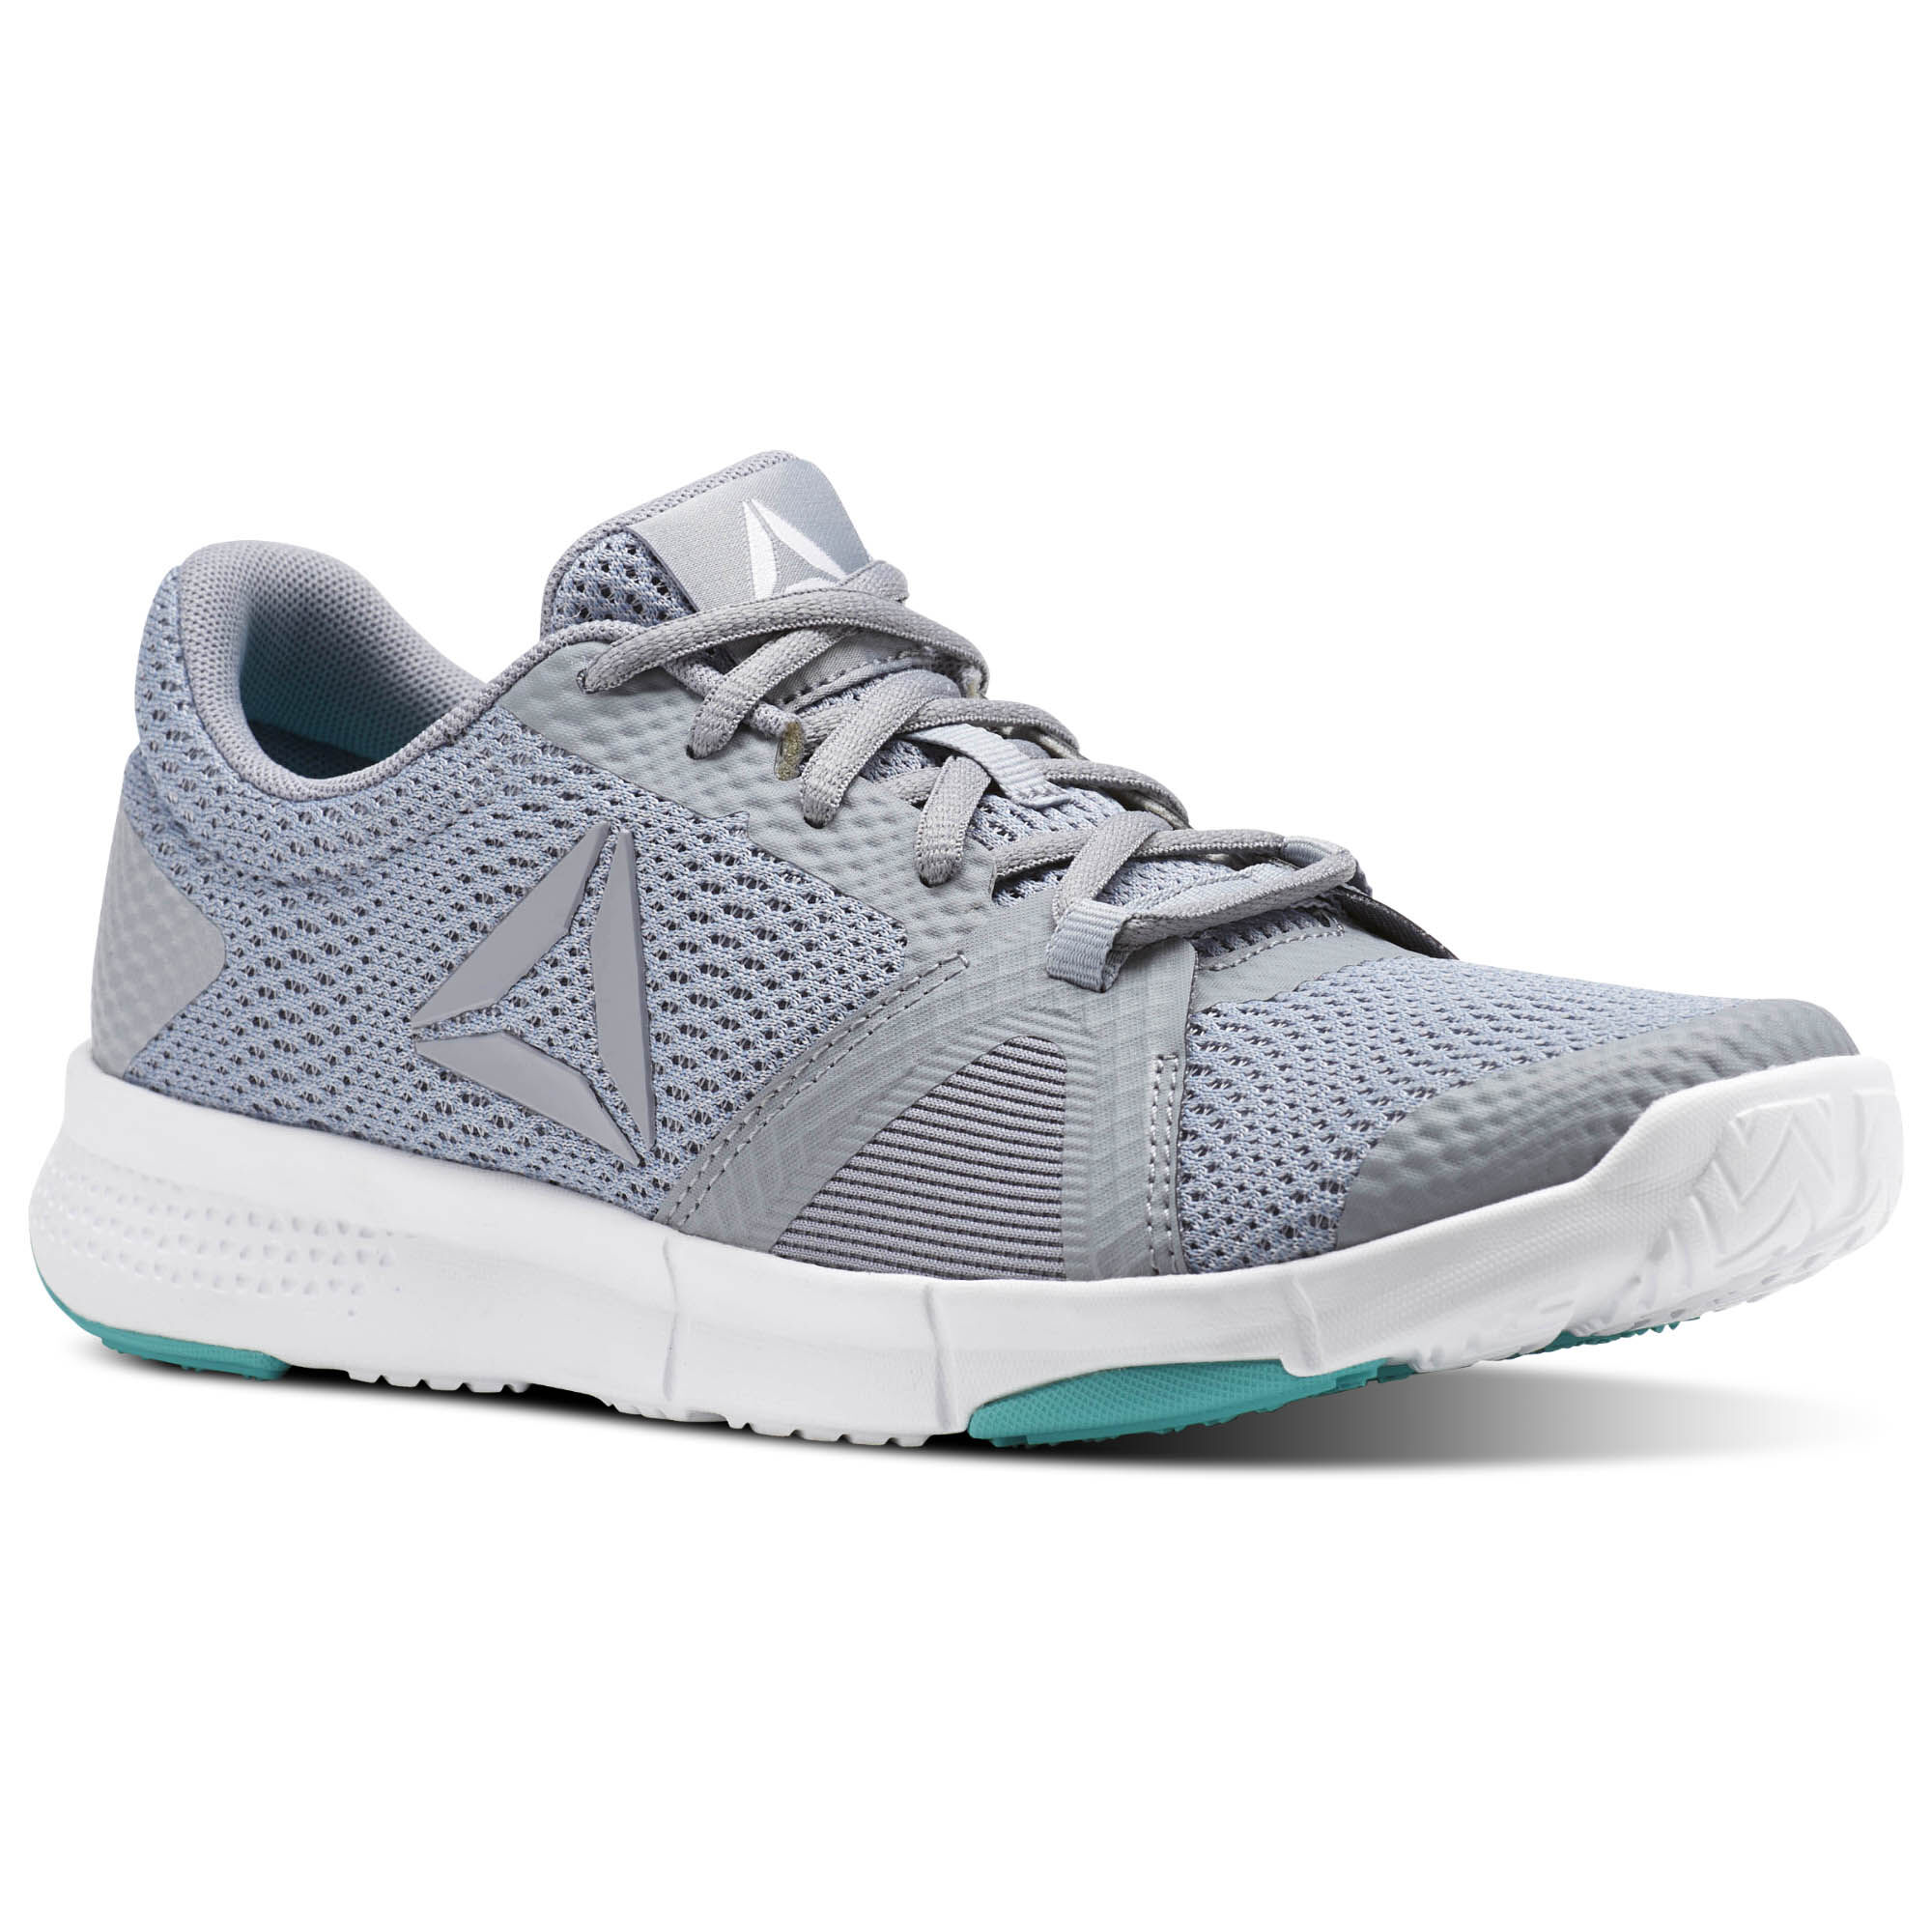 Reebok - Reebok Flexile Cool Shadow/Rain Cloud/White/Solid Teal BT0021